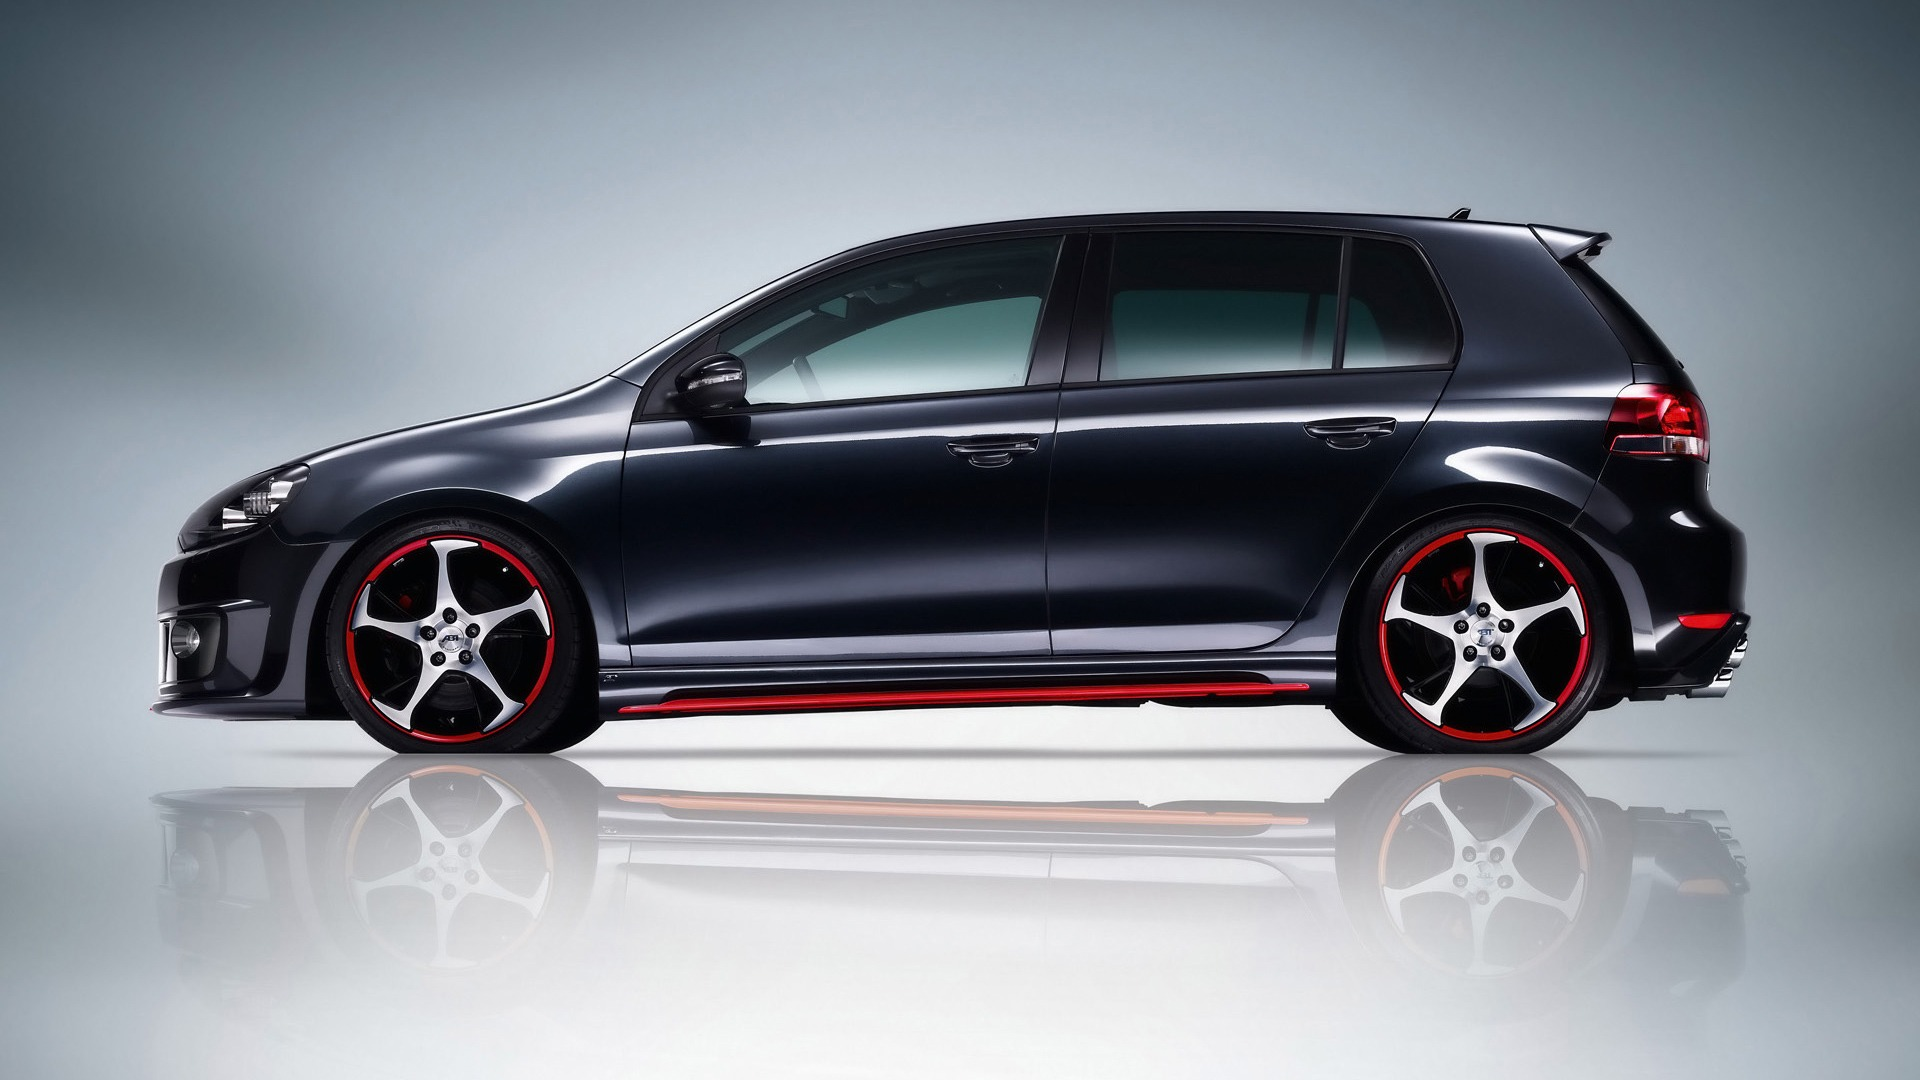 Abt VW Golf VI GTI Wallpaper Volkswagen Cars Wallpapers